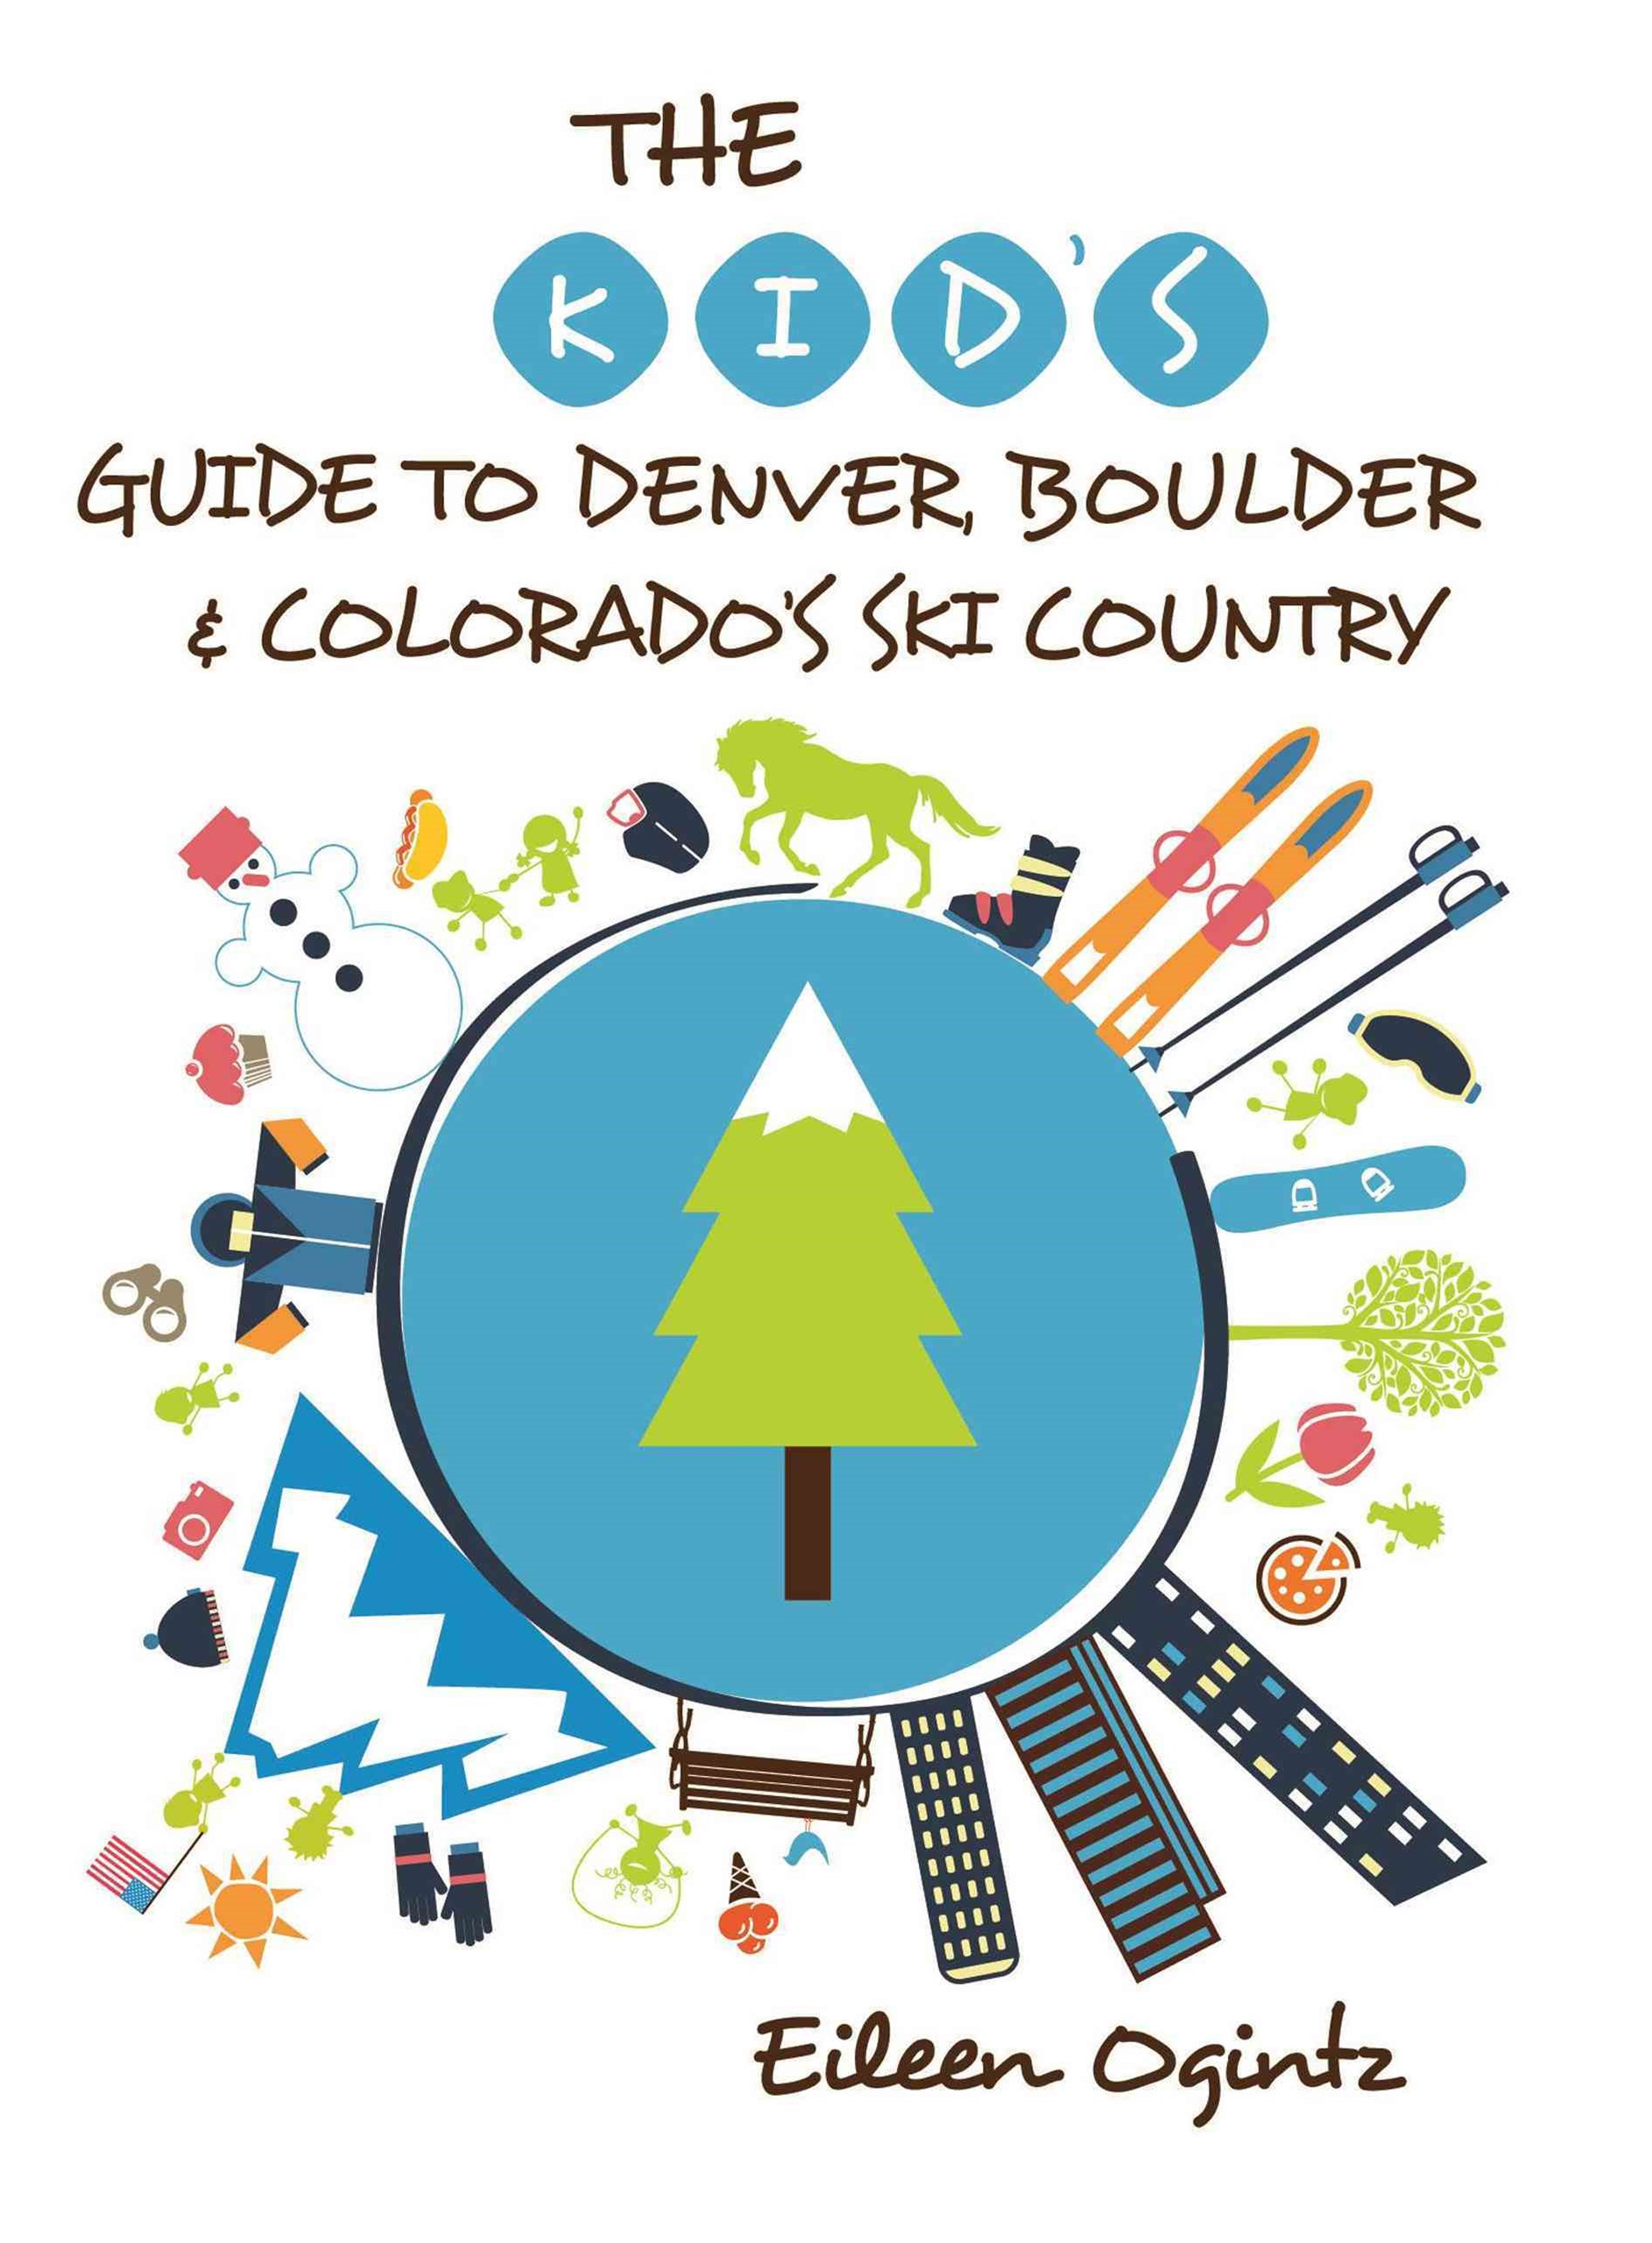 The Kid's Guide to Denver, Boulder and Colorado's Ski Country